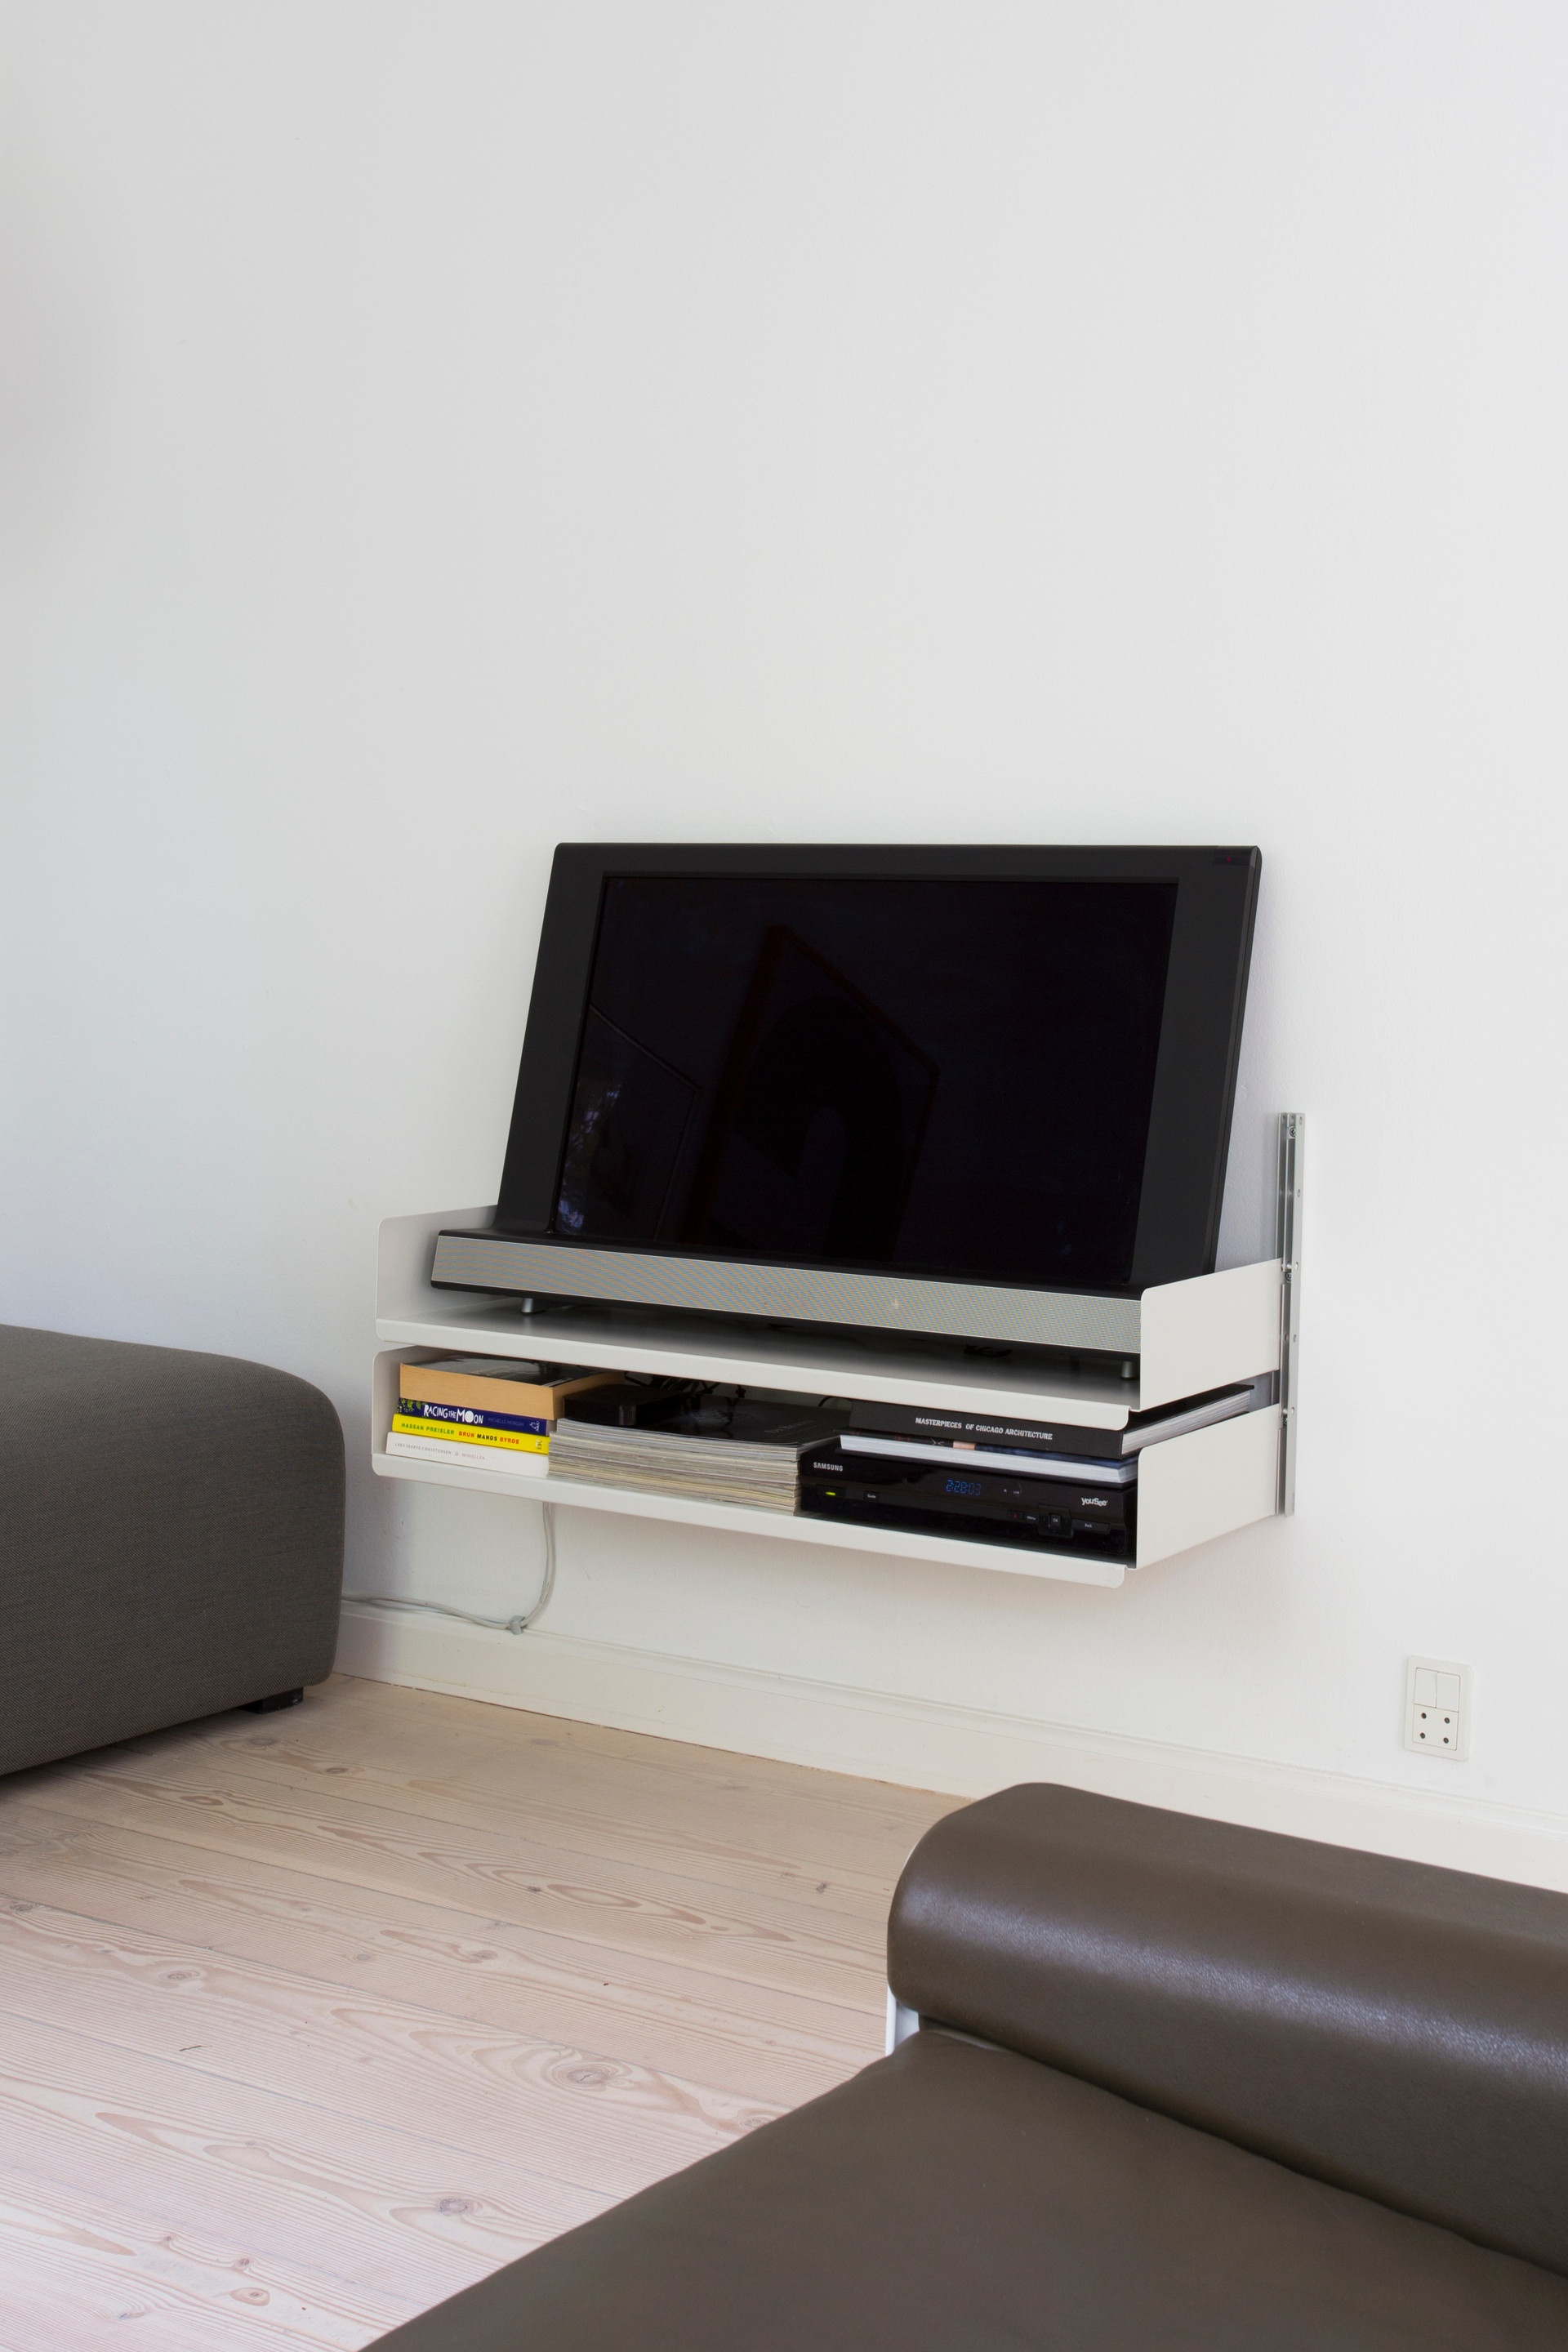 Simply two shelves on two E-Tracks: an economical TV storage solution. Yours for £212